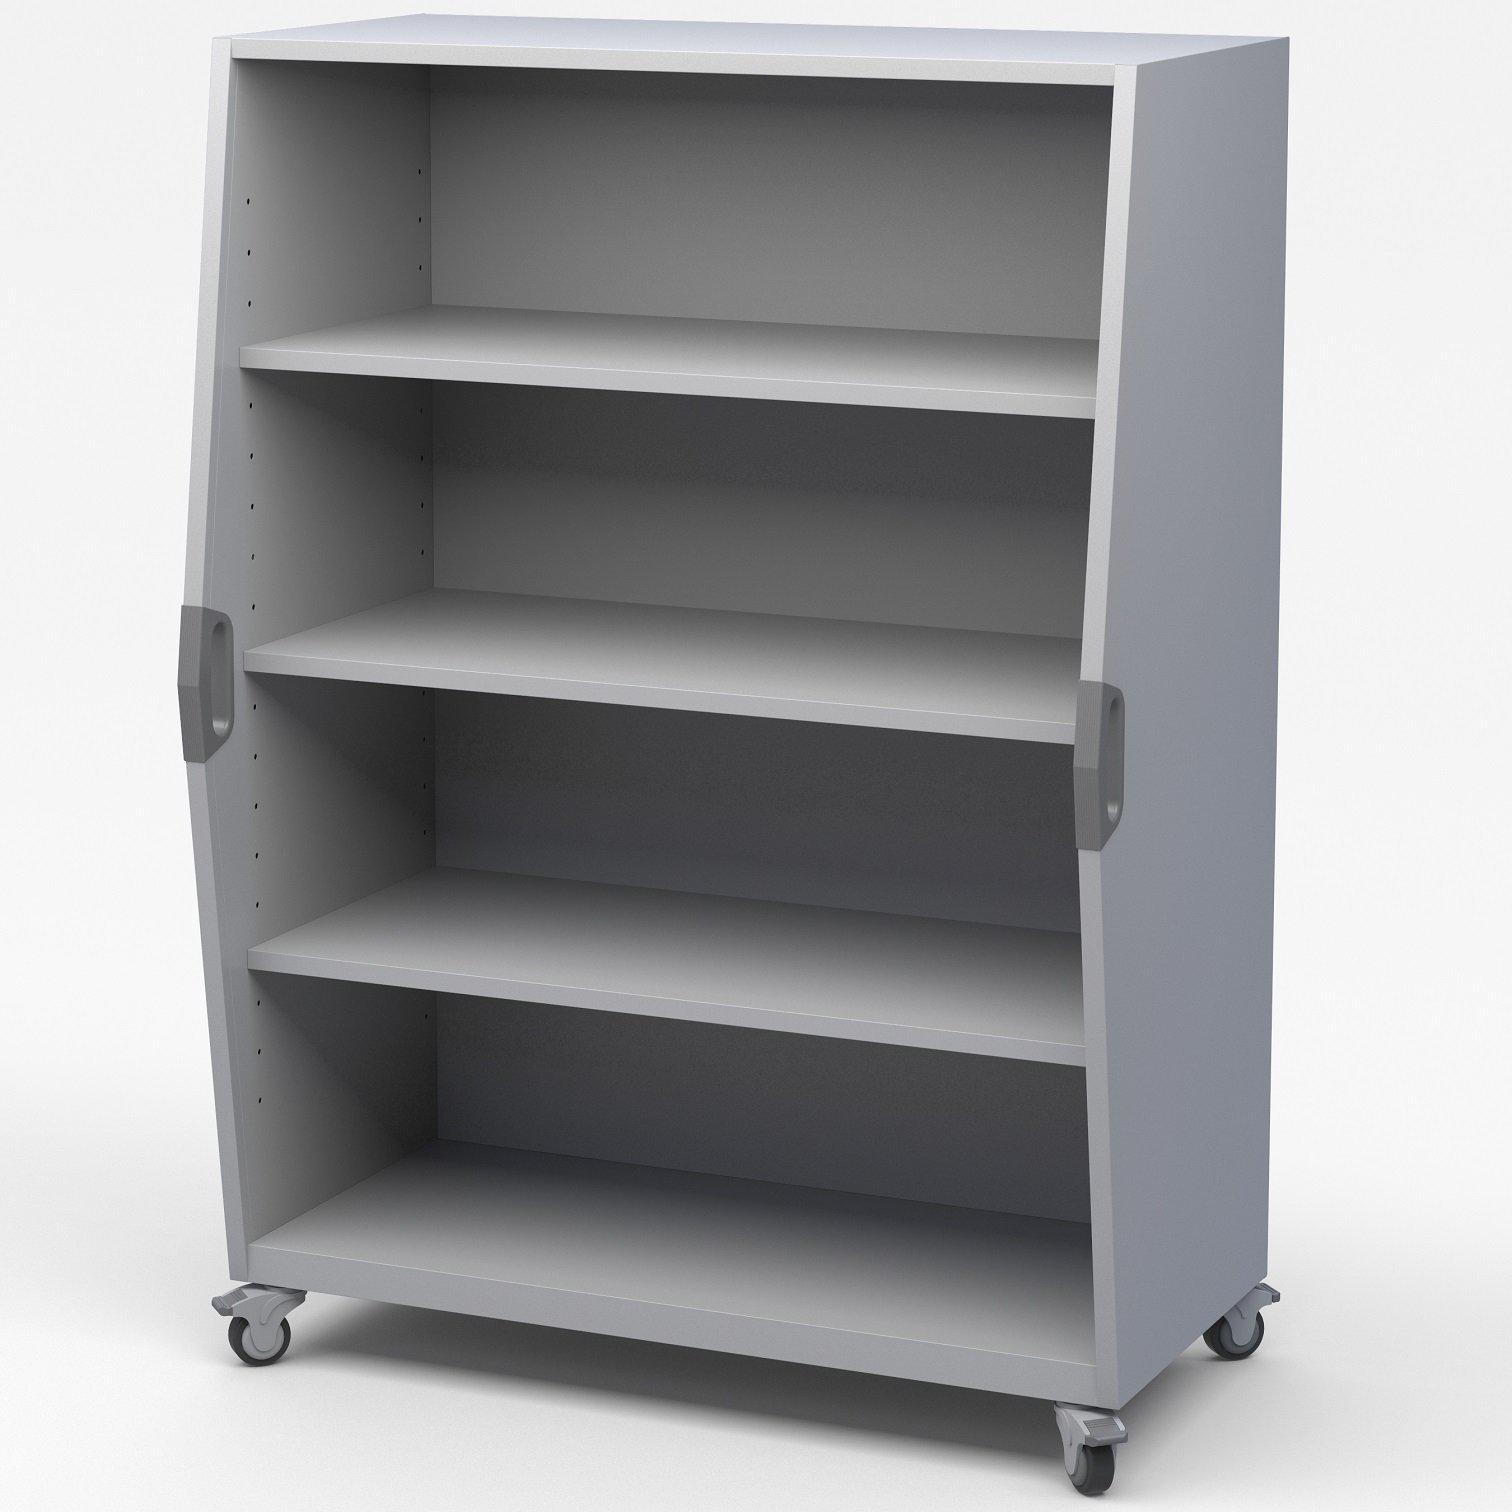 Explorer Series Tall Storage Cart-Storage Cabinets & Shelving-Open Storage-